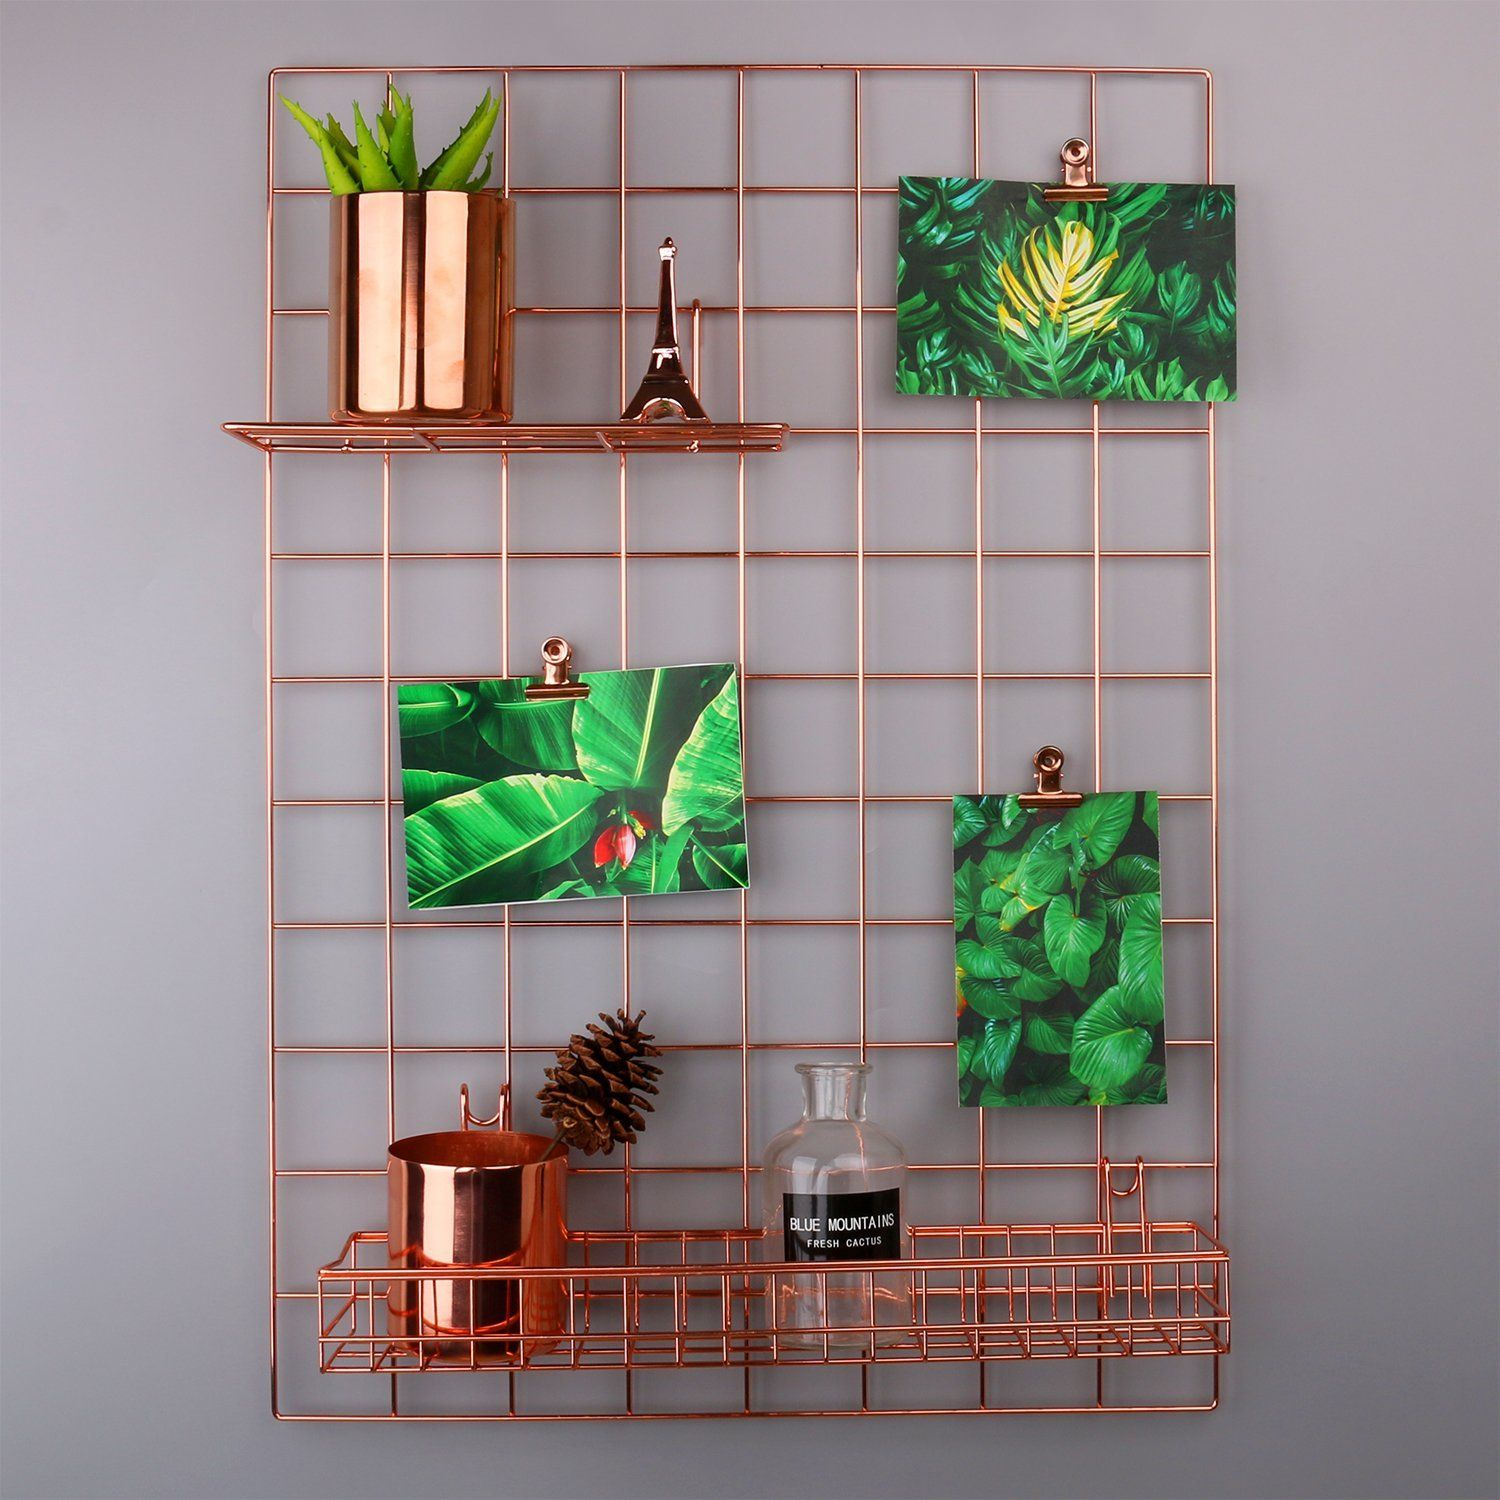 Grid Panel Photo Wall Rumcent Wire Wall Mesh Display Panel ...